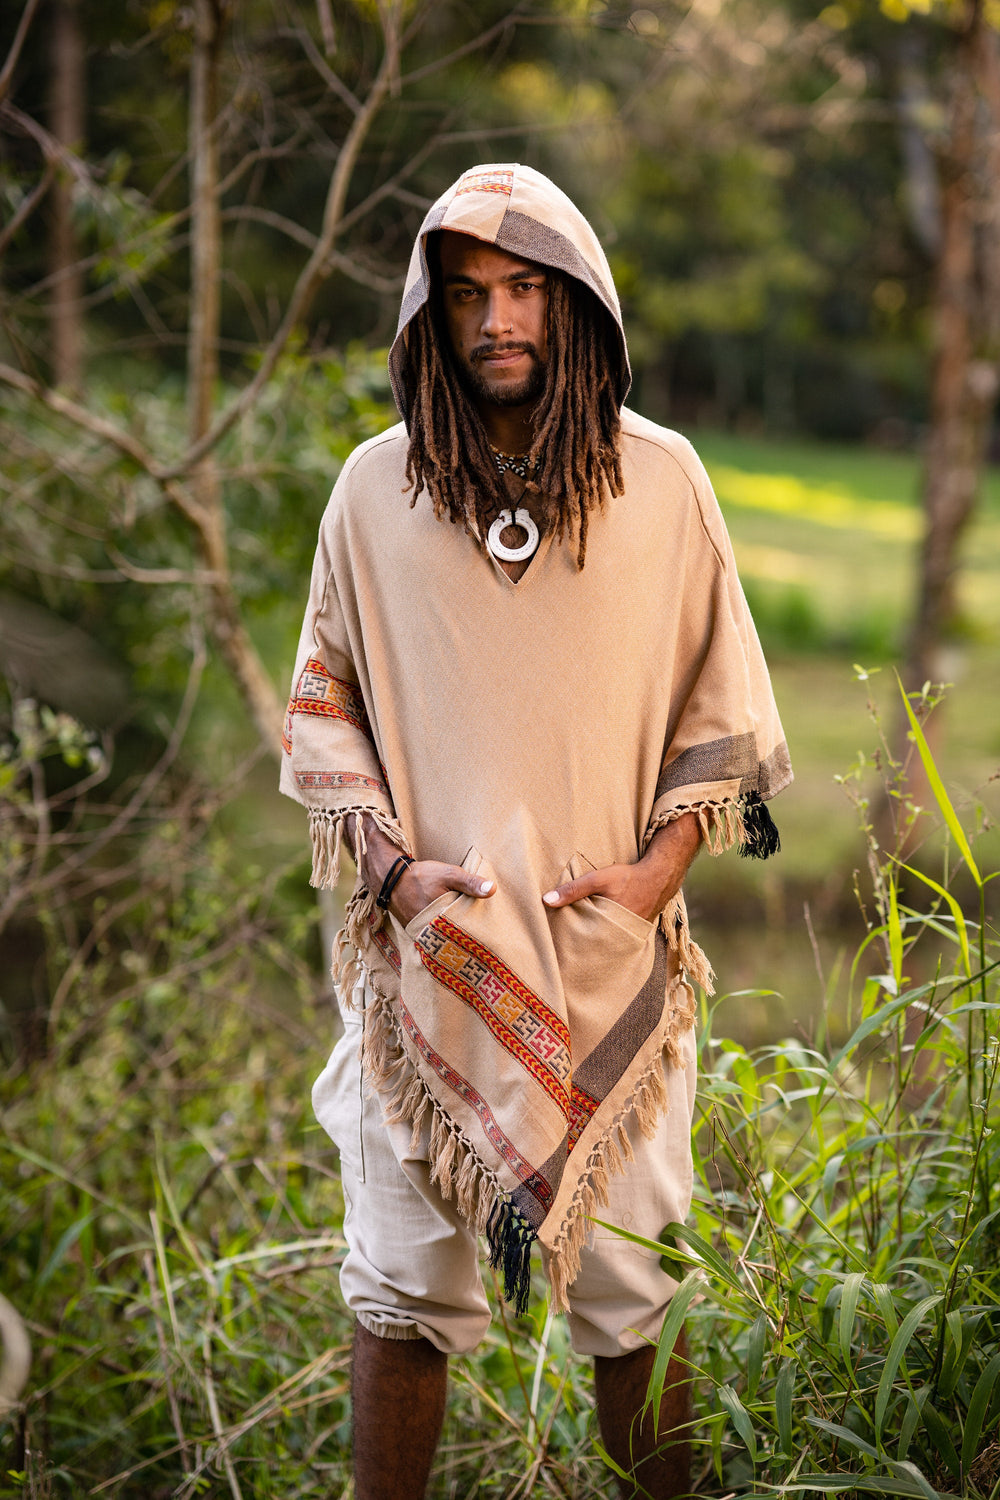 Mens Hooded Poncho Pockets Brown Cashmere Yak Wool, Earthy Tribal Pattern Festival Gypsy AJJAYA Boho Winter Warm Primitive Natural Hood